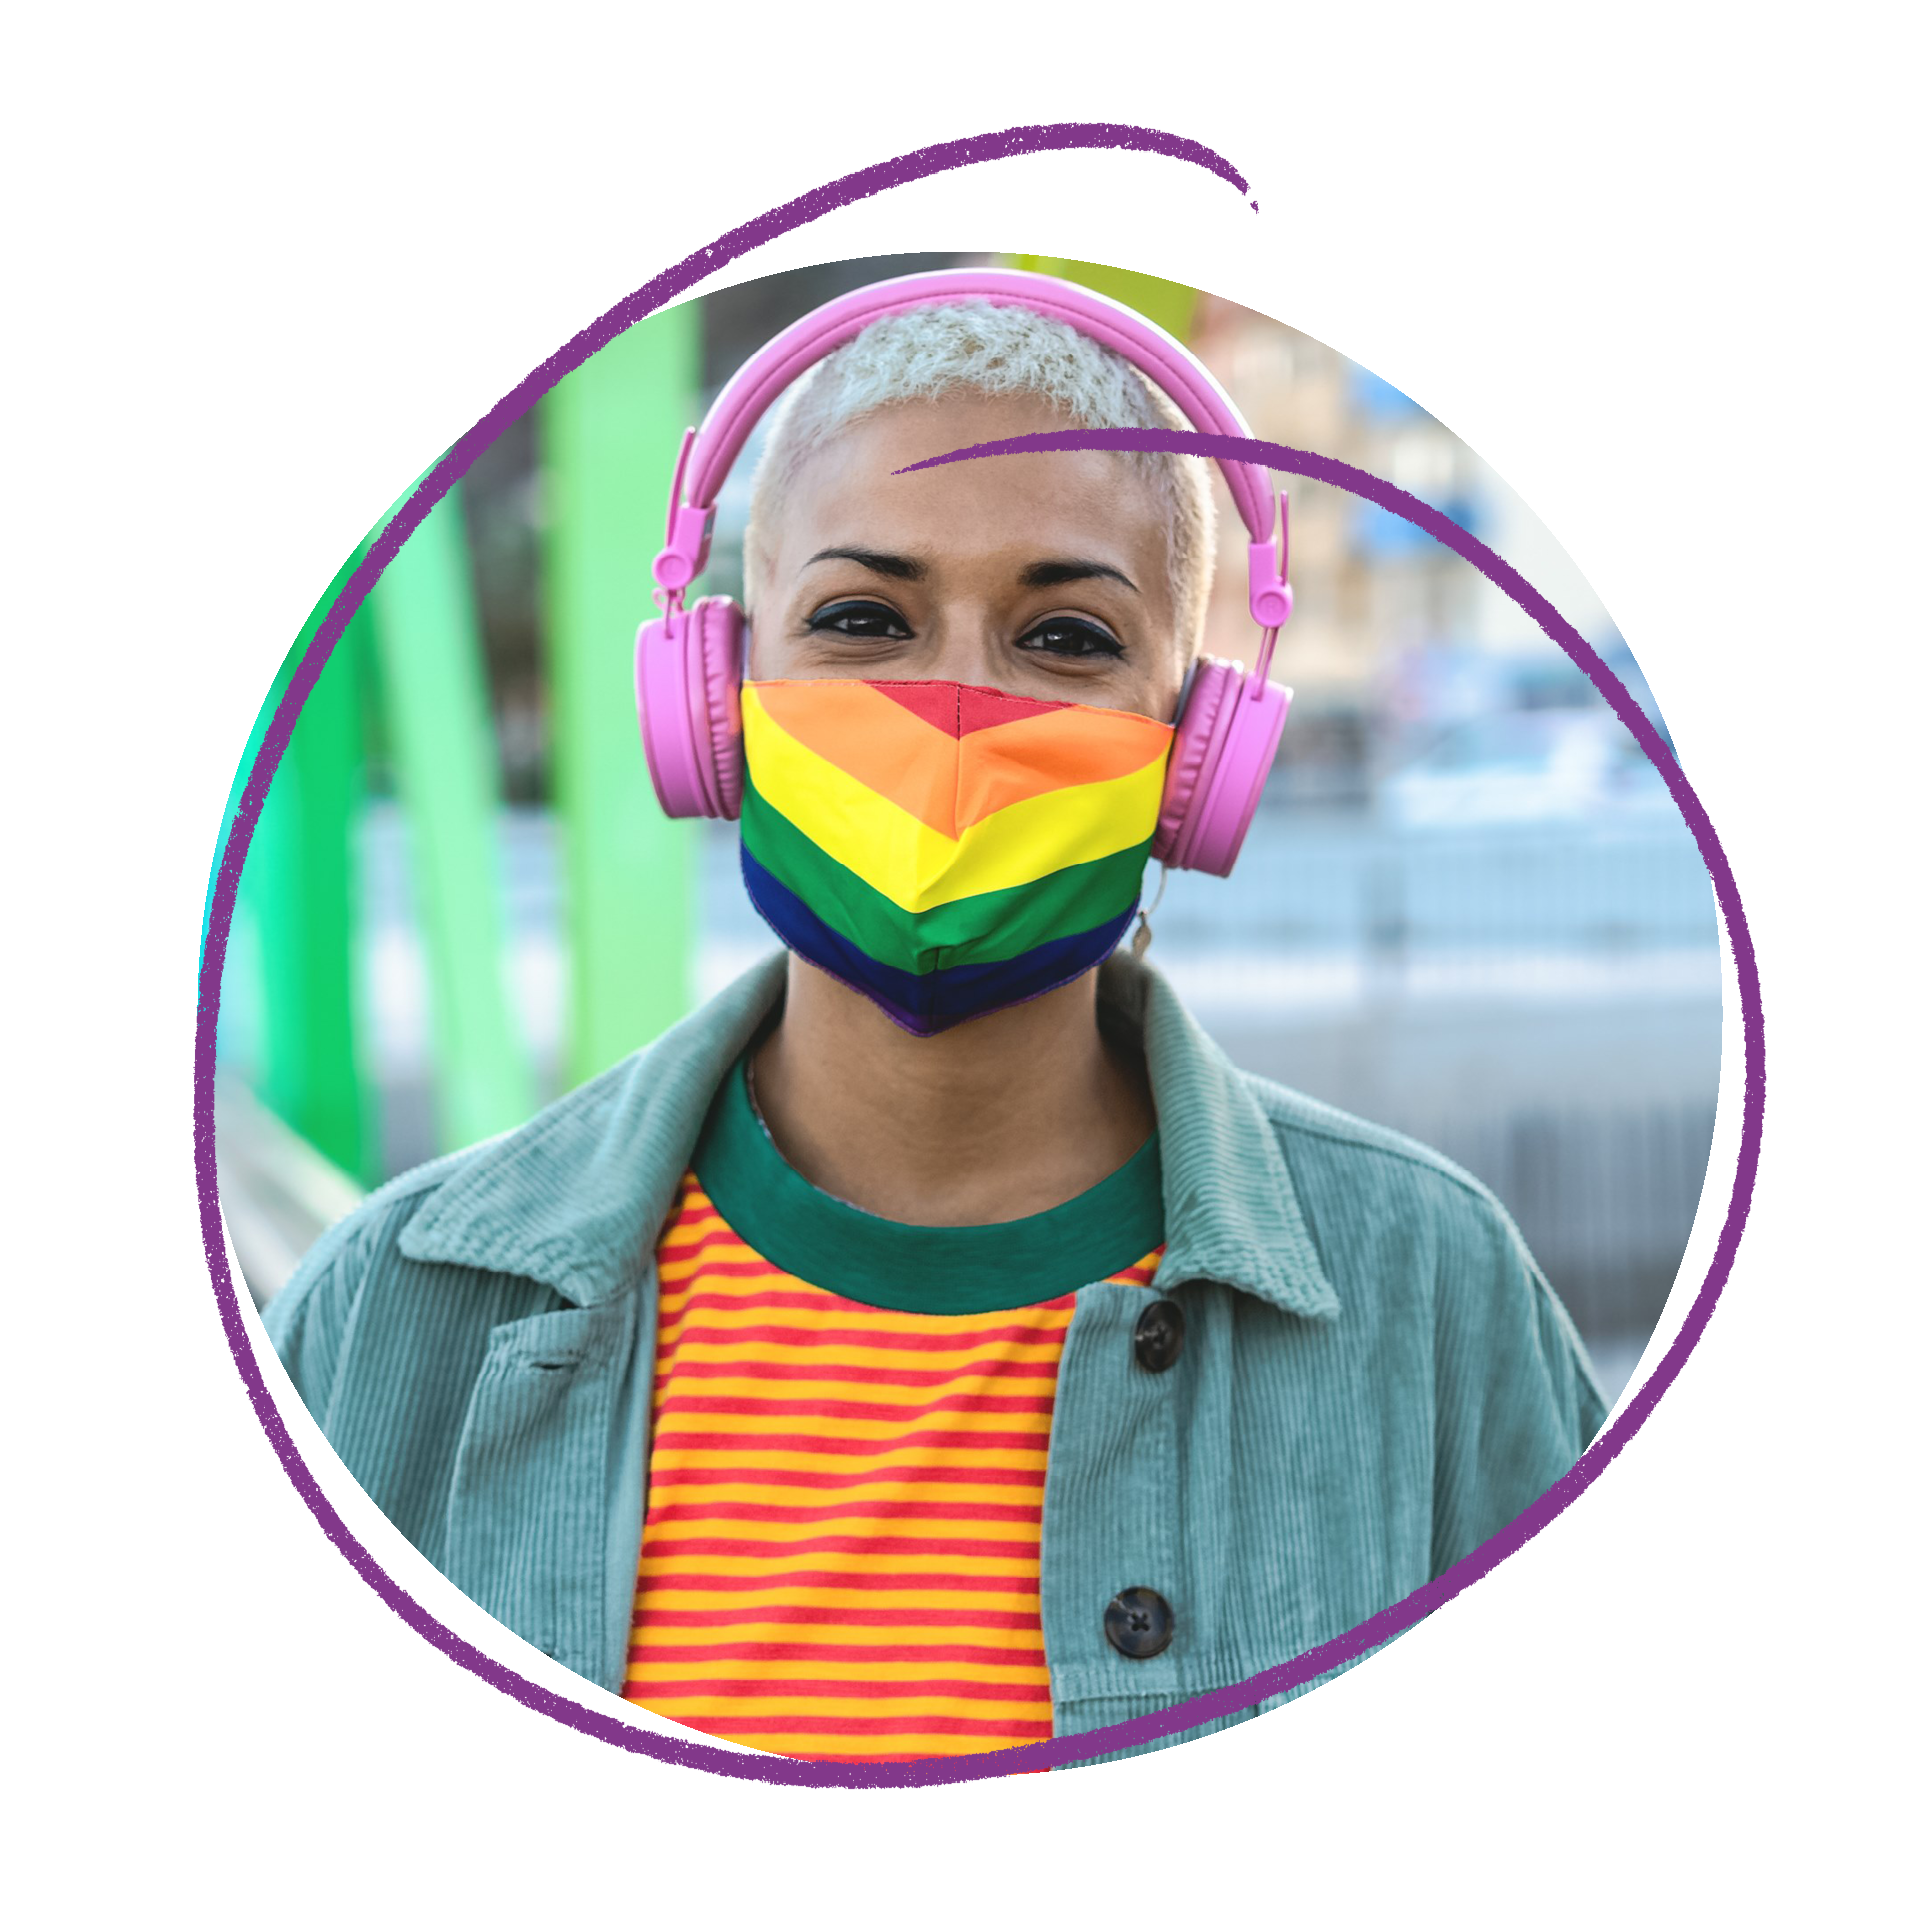 Young person with short white hair and dark eyes wearing a rainbow mask.  She is also wearing an orange and yellow stripy shirt, blue corduroy Jacket and large pink headphones.